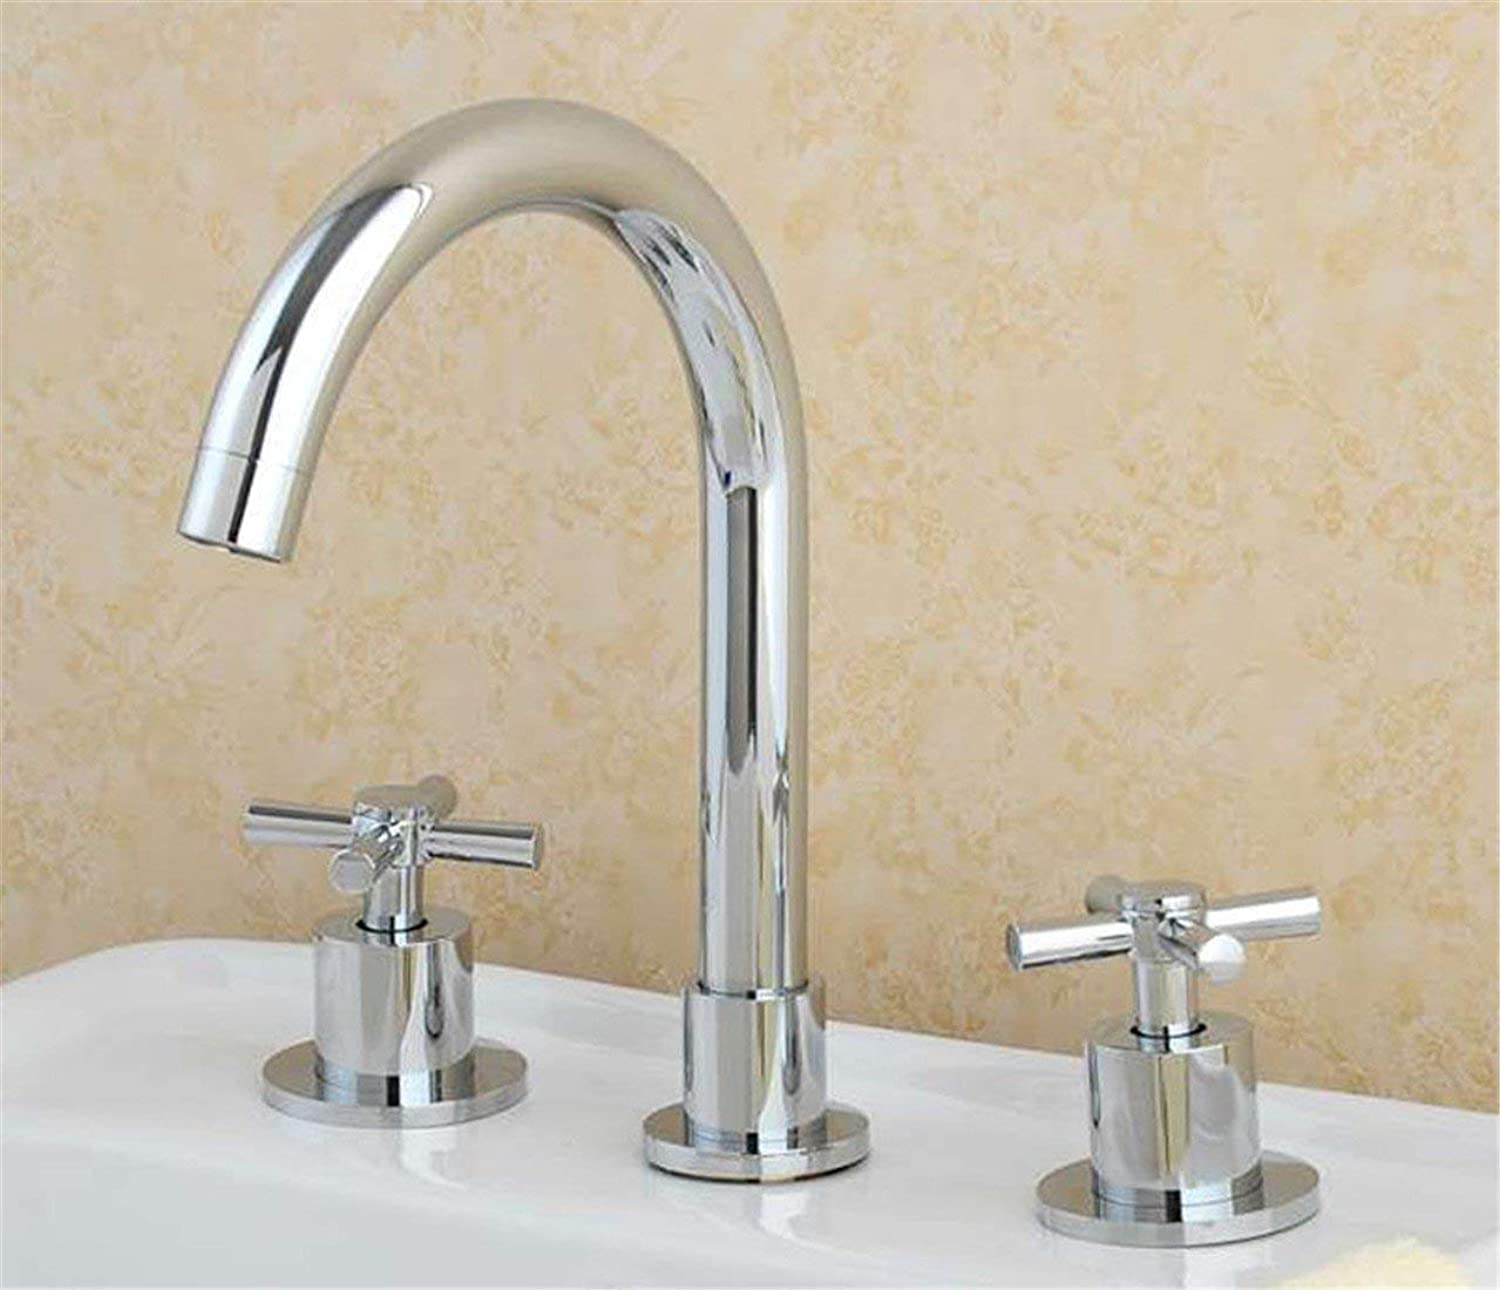 Oudan Basin Mixer Tap Bathroom Sink Faucet The licensed full copper antique continental 3 holes basin mixer jade gold basin Double Handle faucet and cold water,C (color   C)